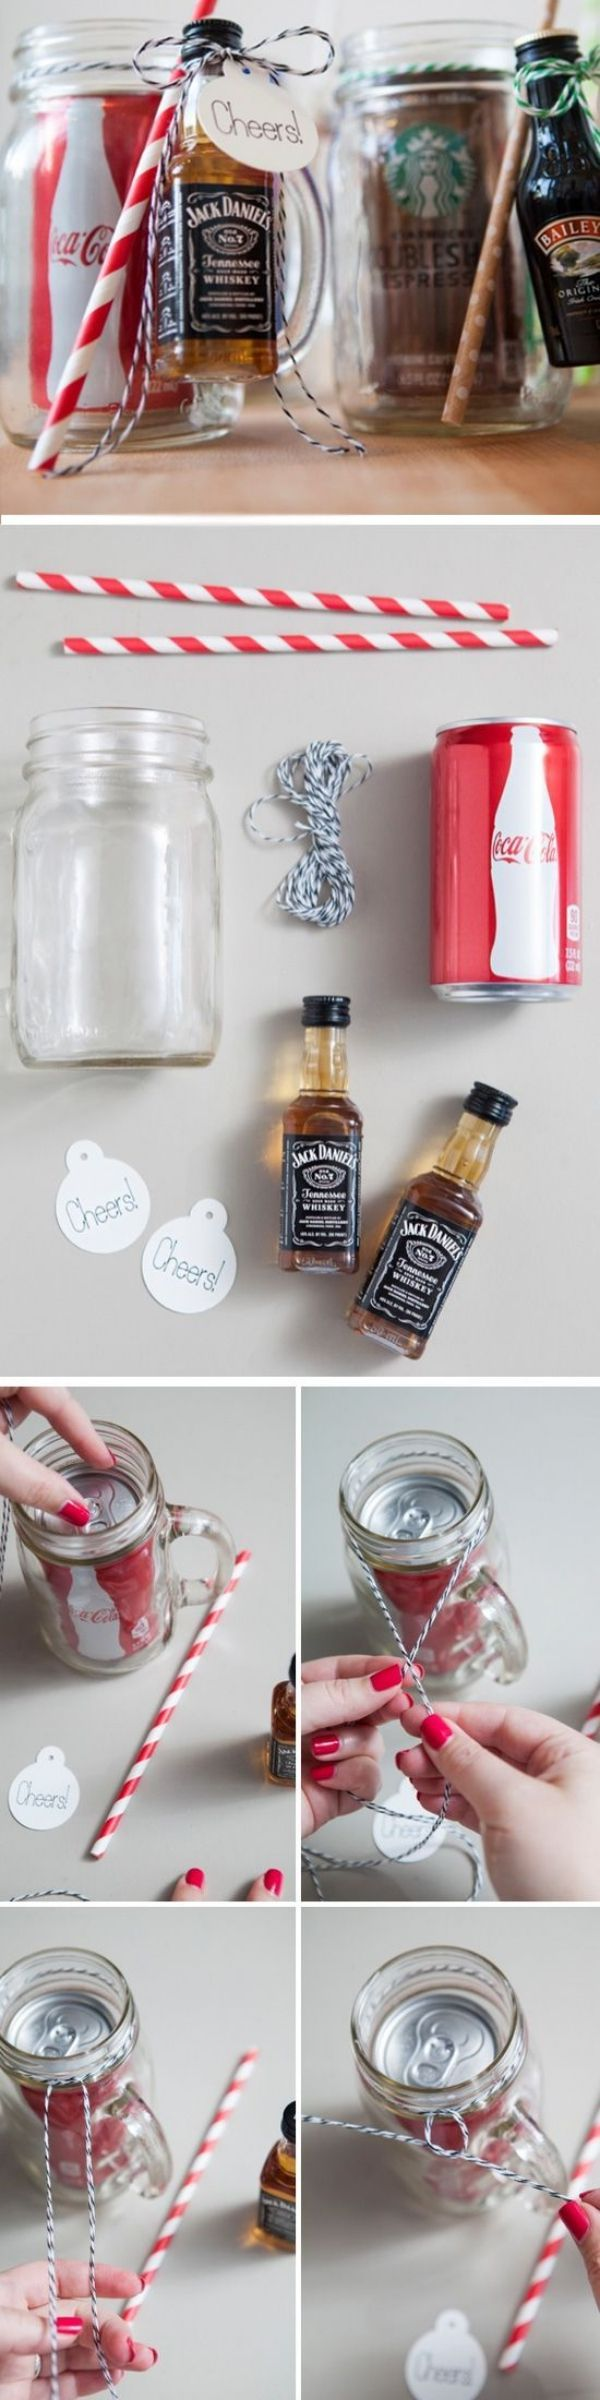 The 25+ best Christmas gift ideas ideas on Pinterest | Simple ...